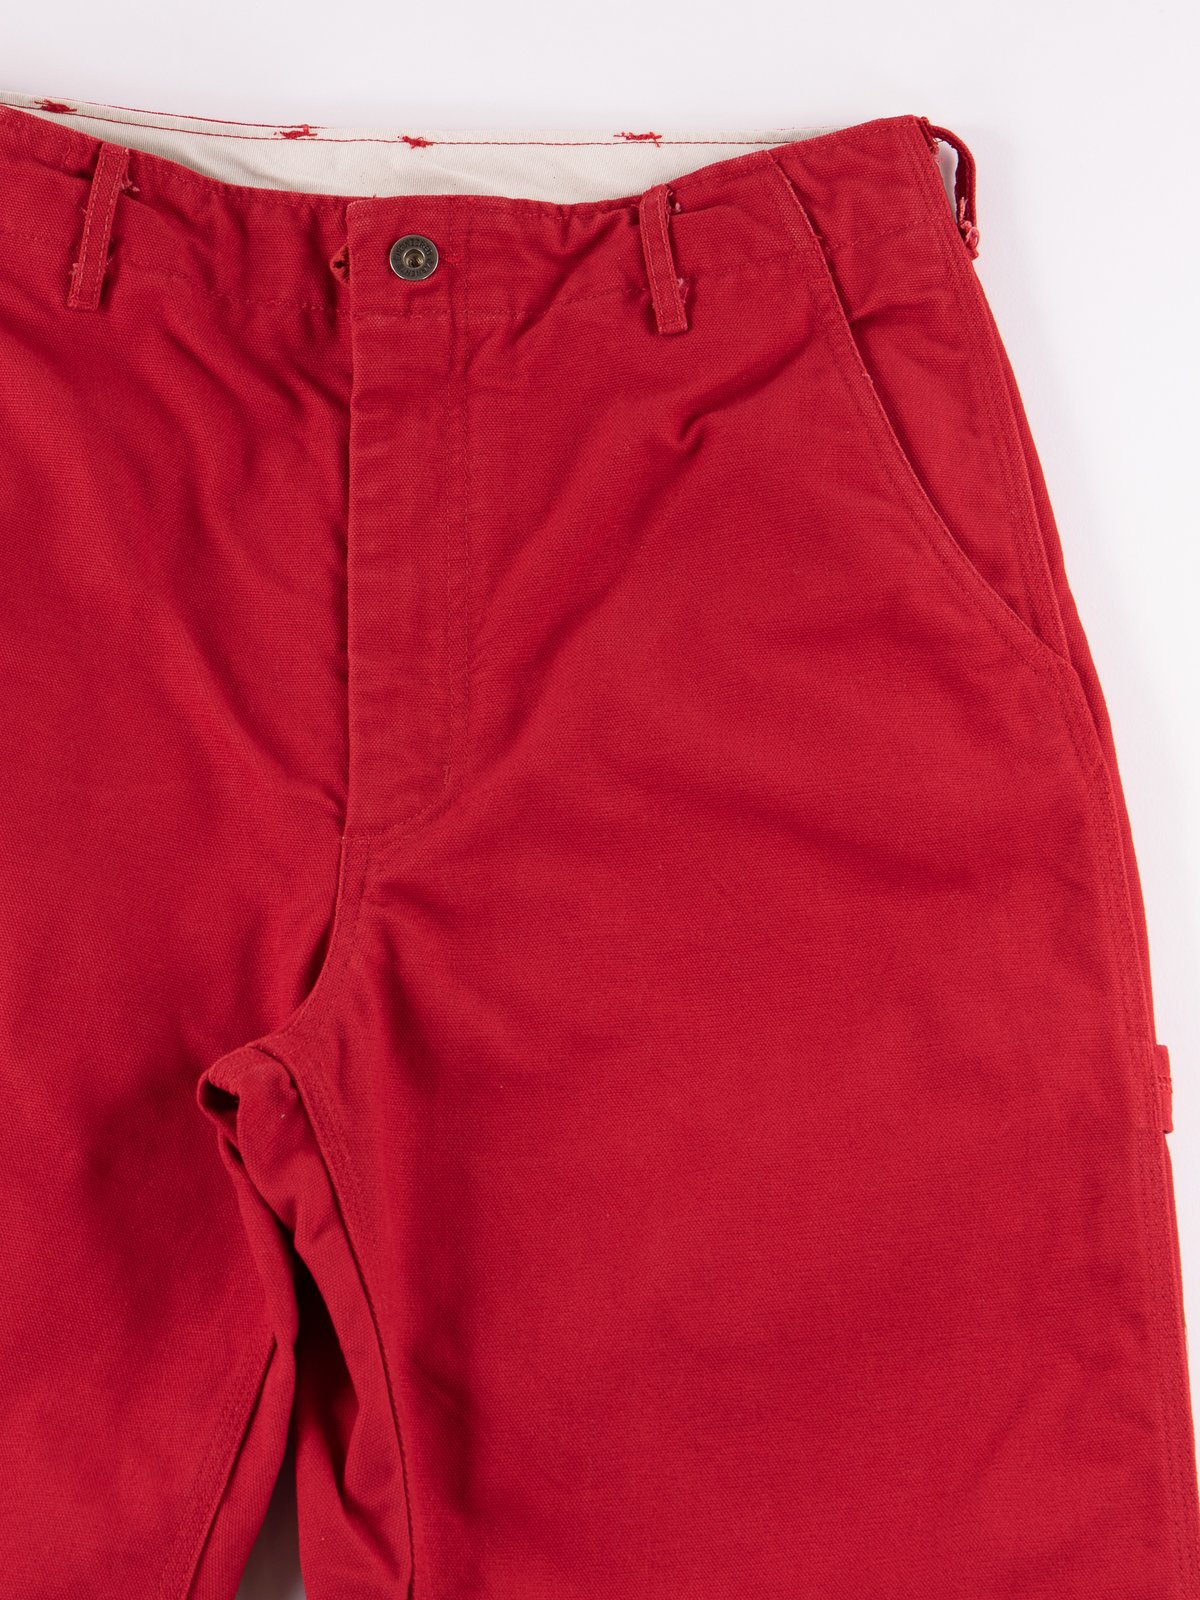 Red 12oz Duck Canvas Logger Pant - Image 3